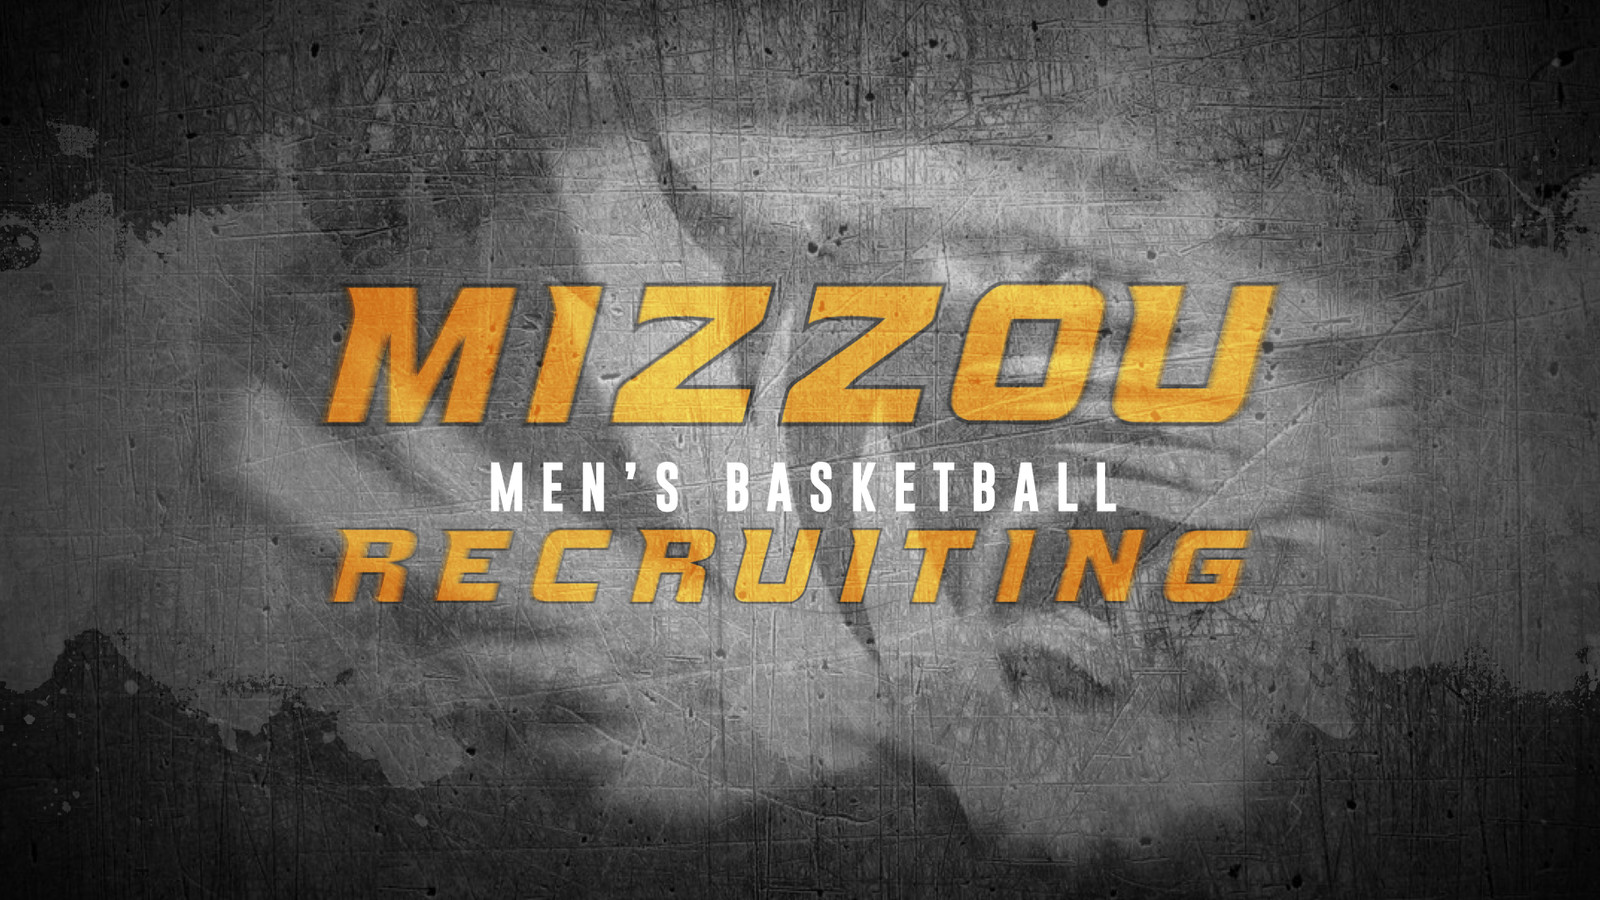 Mizzou_20recruiting_20header_20hd.0